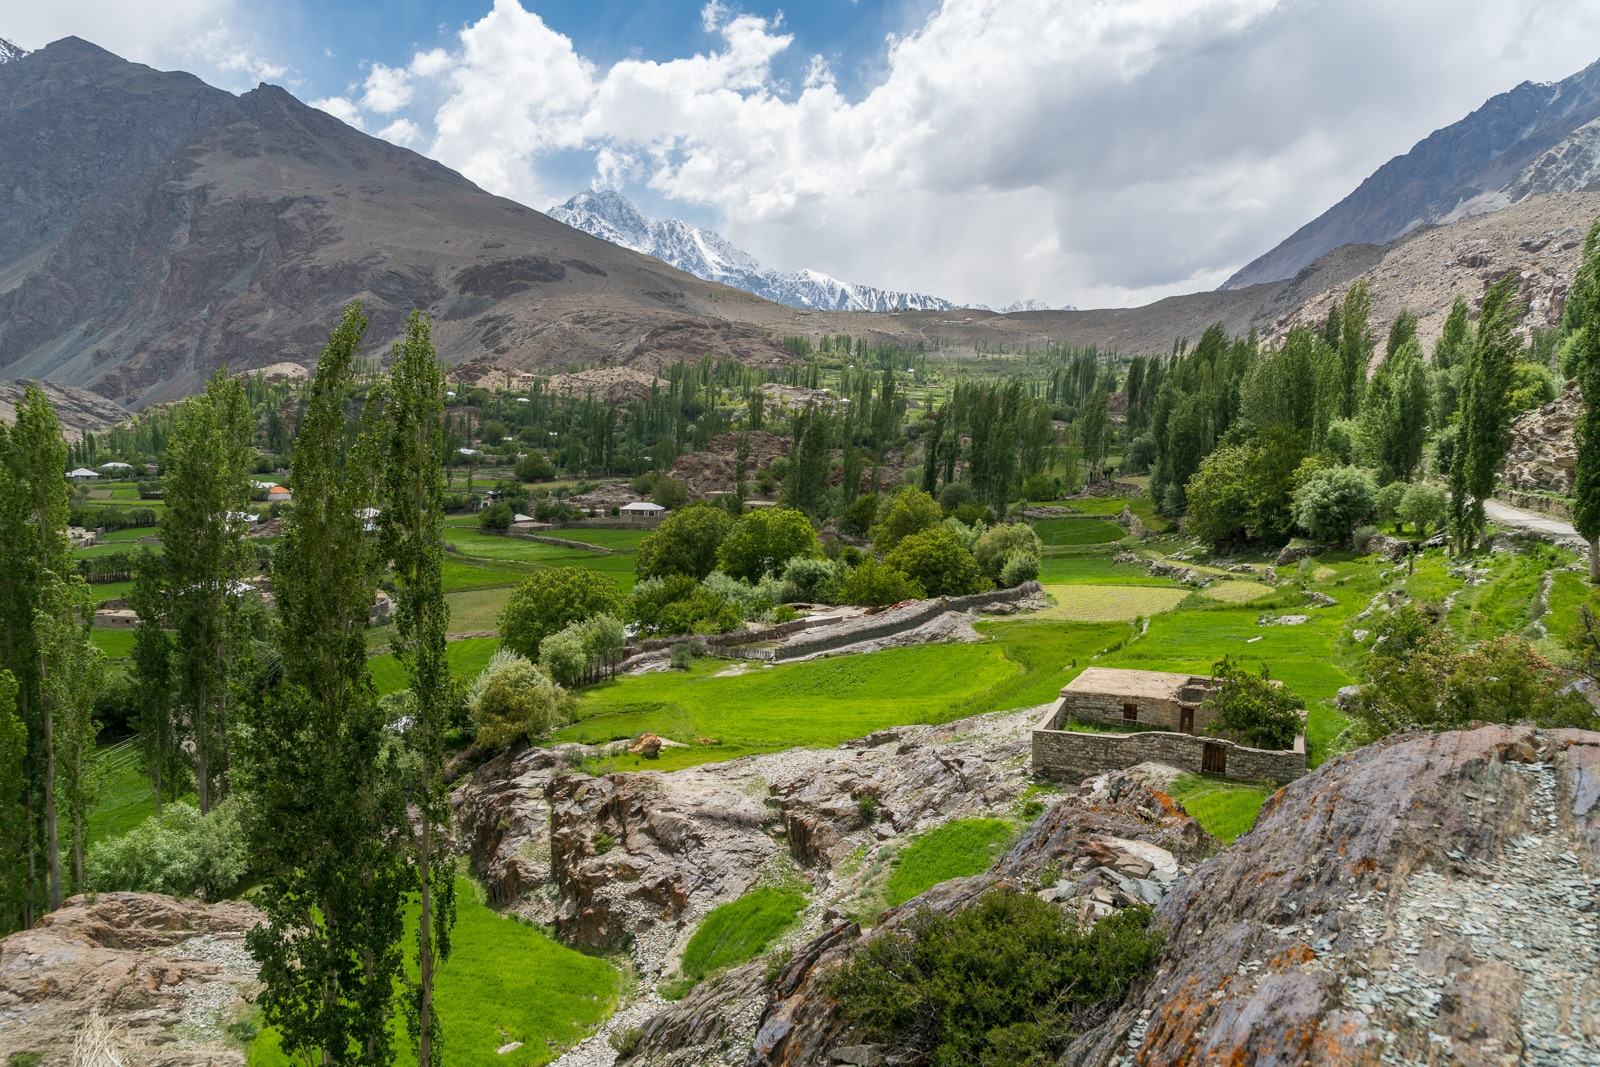 Phander Valley travel guide - Greenery in a remote village near Phander - Lost With Purpose travel blog